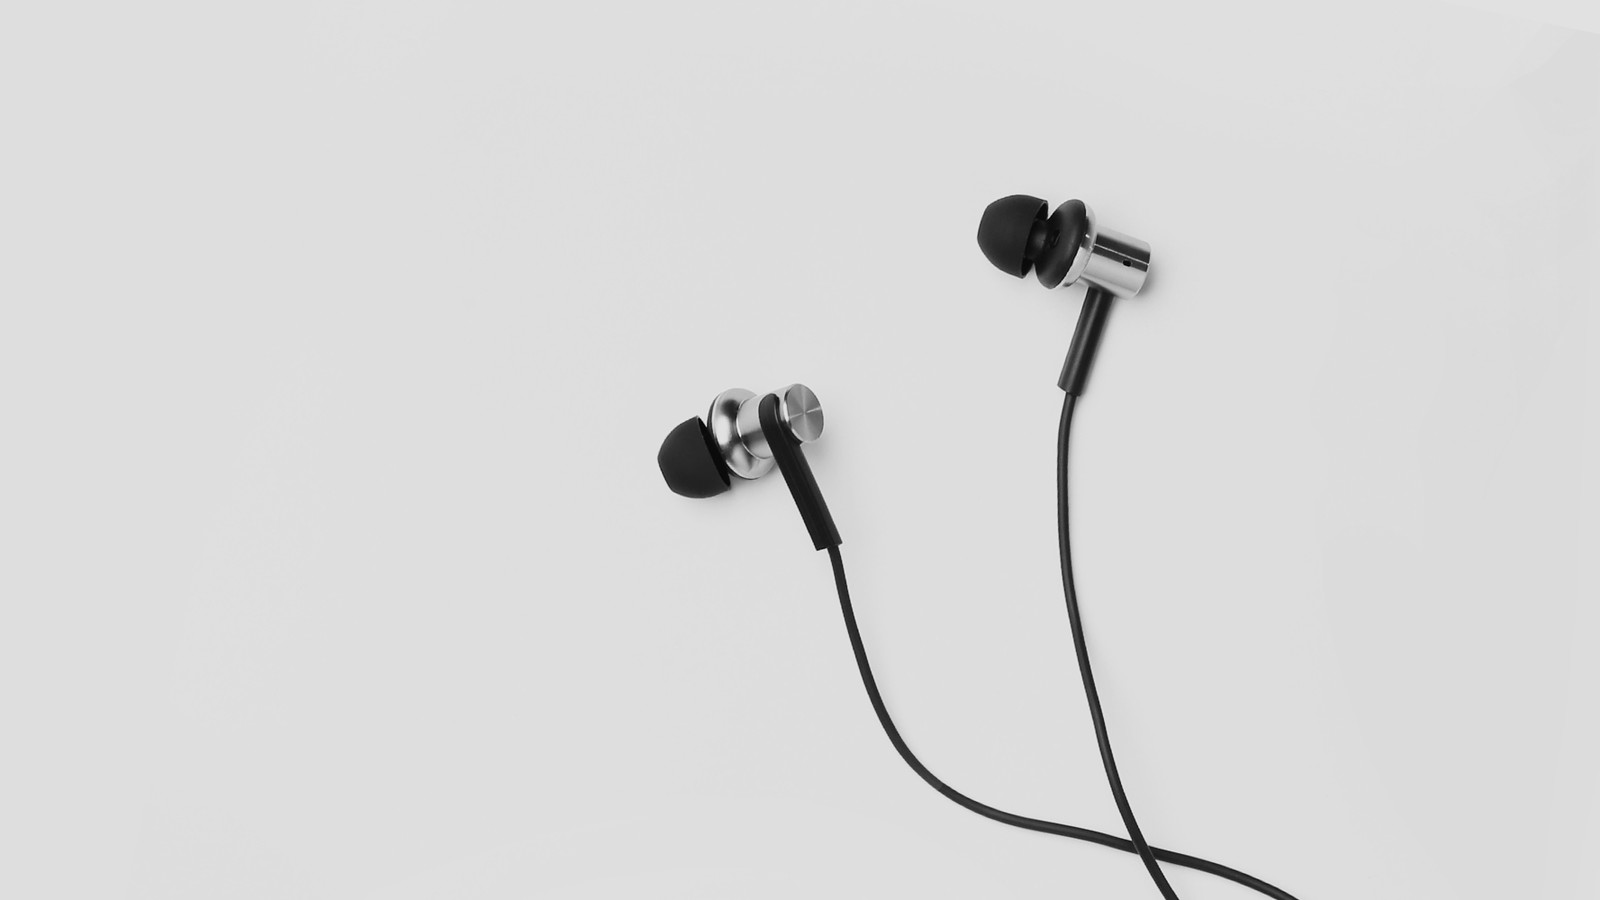 Xiaomi's new headphones pair great sound with a low price